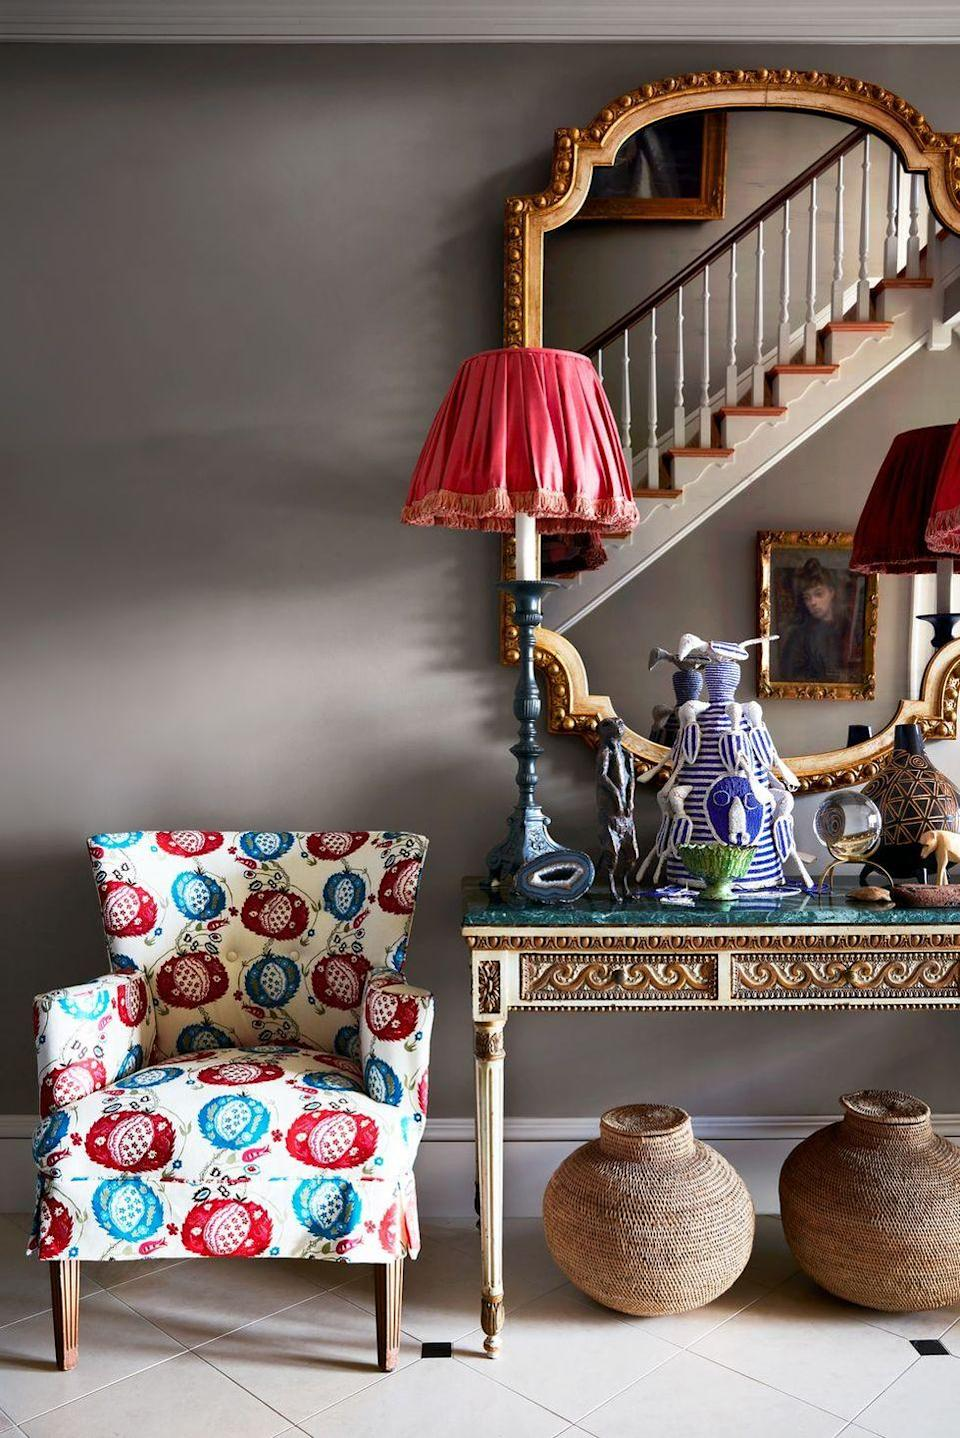 "<p>The space between a console table and floor can look a little awkward when empty, especially in a super collected and thoughtful space, like this hallway in the home of designer <a href=""https://www.mallyskokdesign.com/"" rel=""nofollow noopener"" target=""_blank"" data-ylk=""slk:Mally Skok"" class=""link rapid-noclick-resp"">Mally Skok</a>. So she decided to fill the gap with two decorative baskets that complement the tabletop antiques while also adding a more casual twist. </p>"